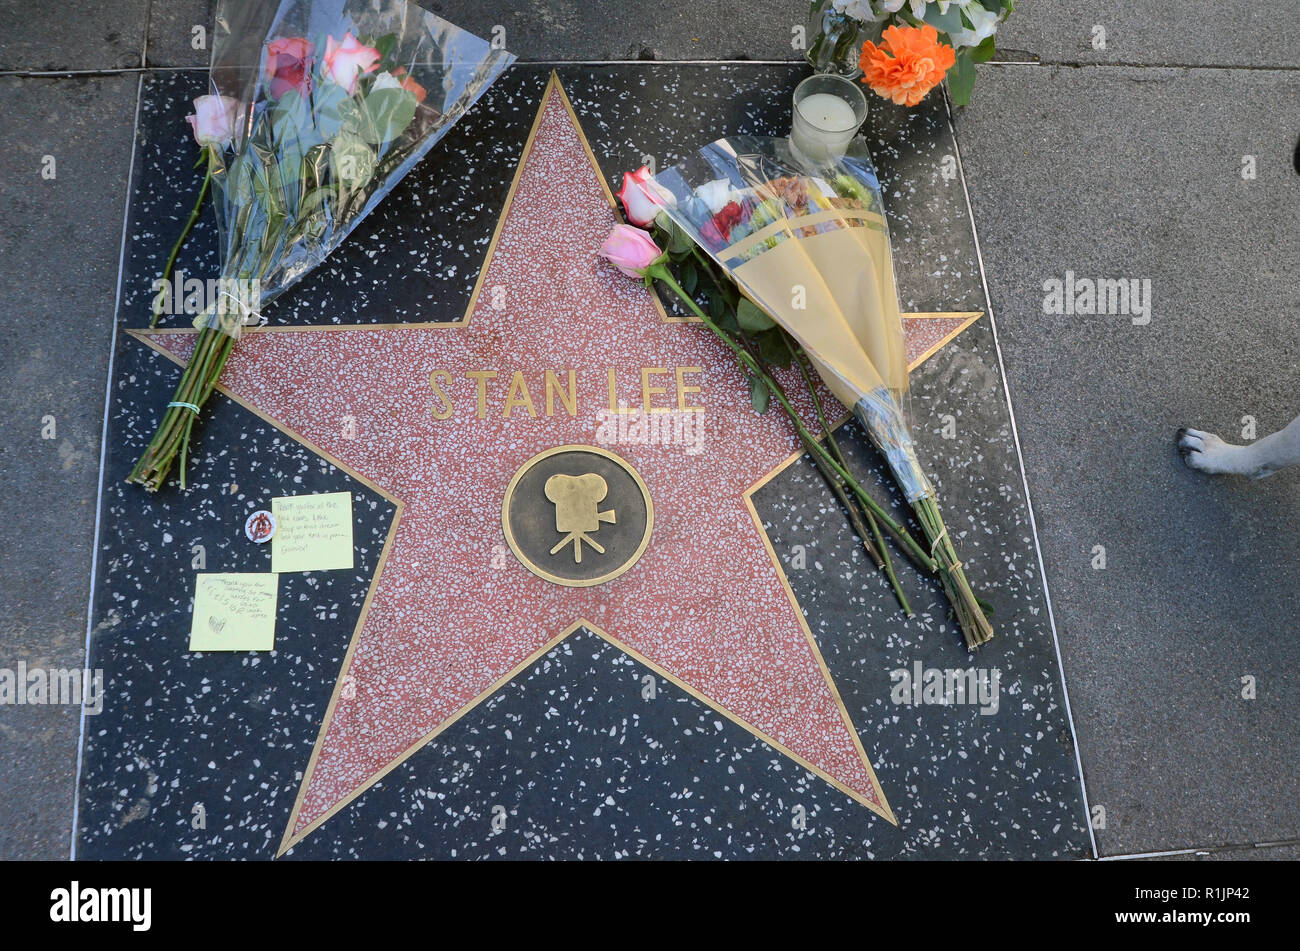 Hollywood, California, USA. 12th Nov, 2018. Flowers placed on Stan Lee's Star on the Hollywood Walk of Fame after passing at the age of 95 in Hollywood, California on November 12, 2018. Credit: David Edwards/Media Punch/Alamy Live News - Stock Image